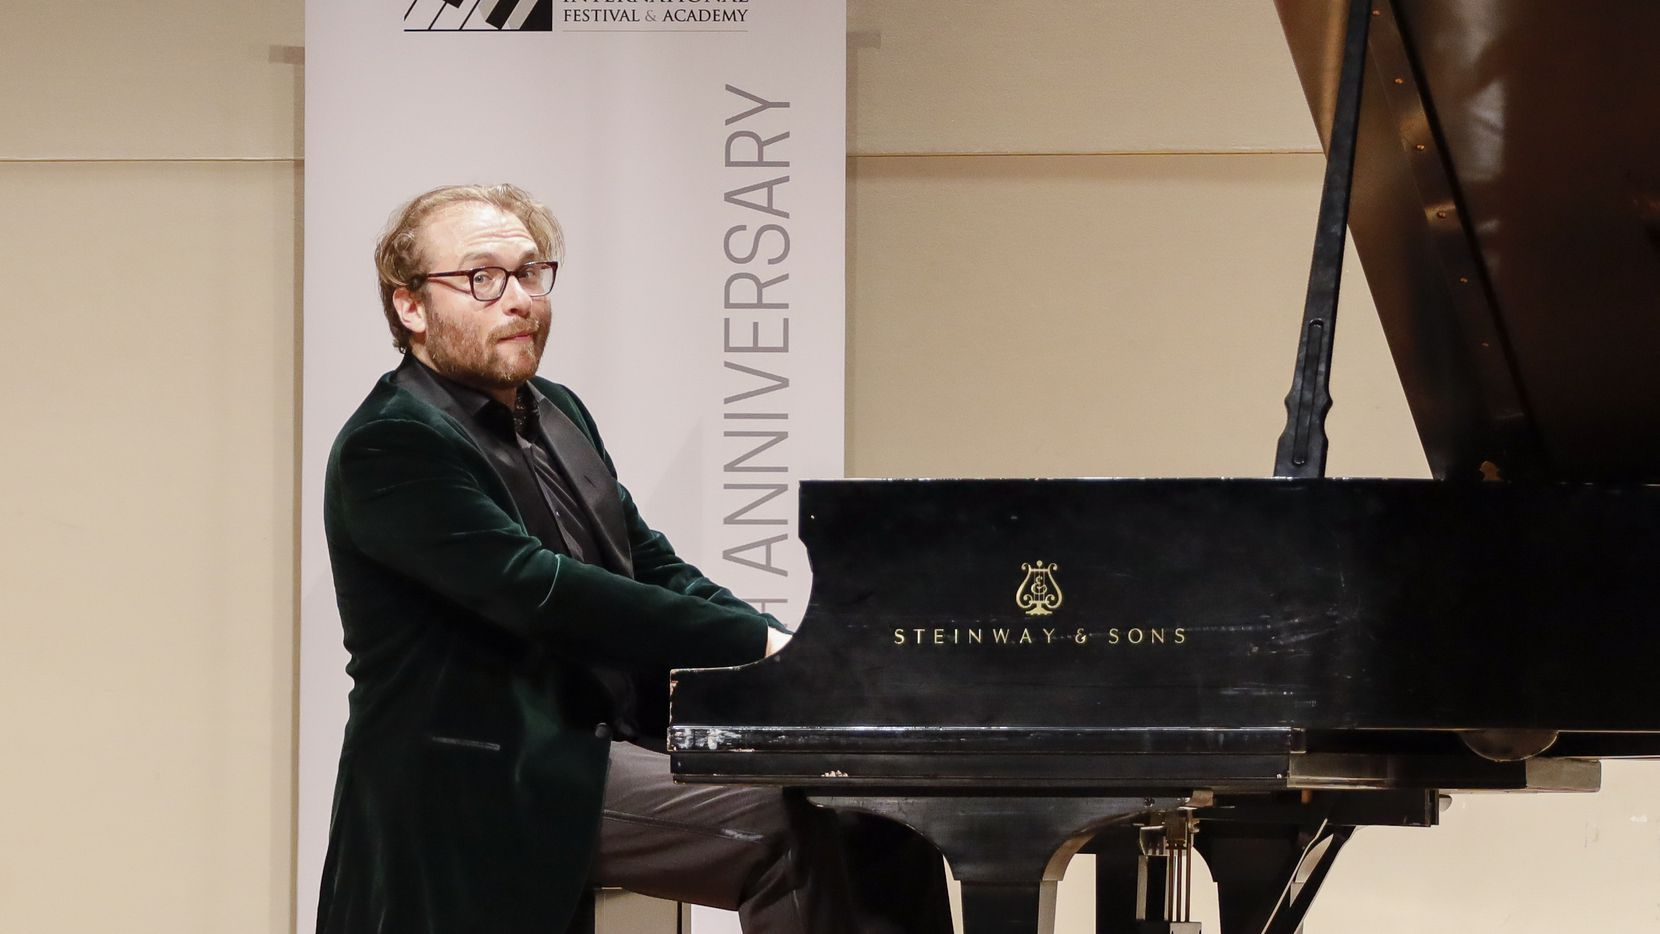 Pianist Adam Golka performs at Ed Landreth Auditorium at Texas Christian University on June 26, 2021, in Fort Worth. It was part of the 2021 PianoTexas International Festival and Academy.